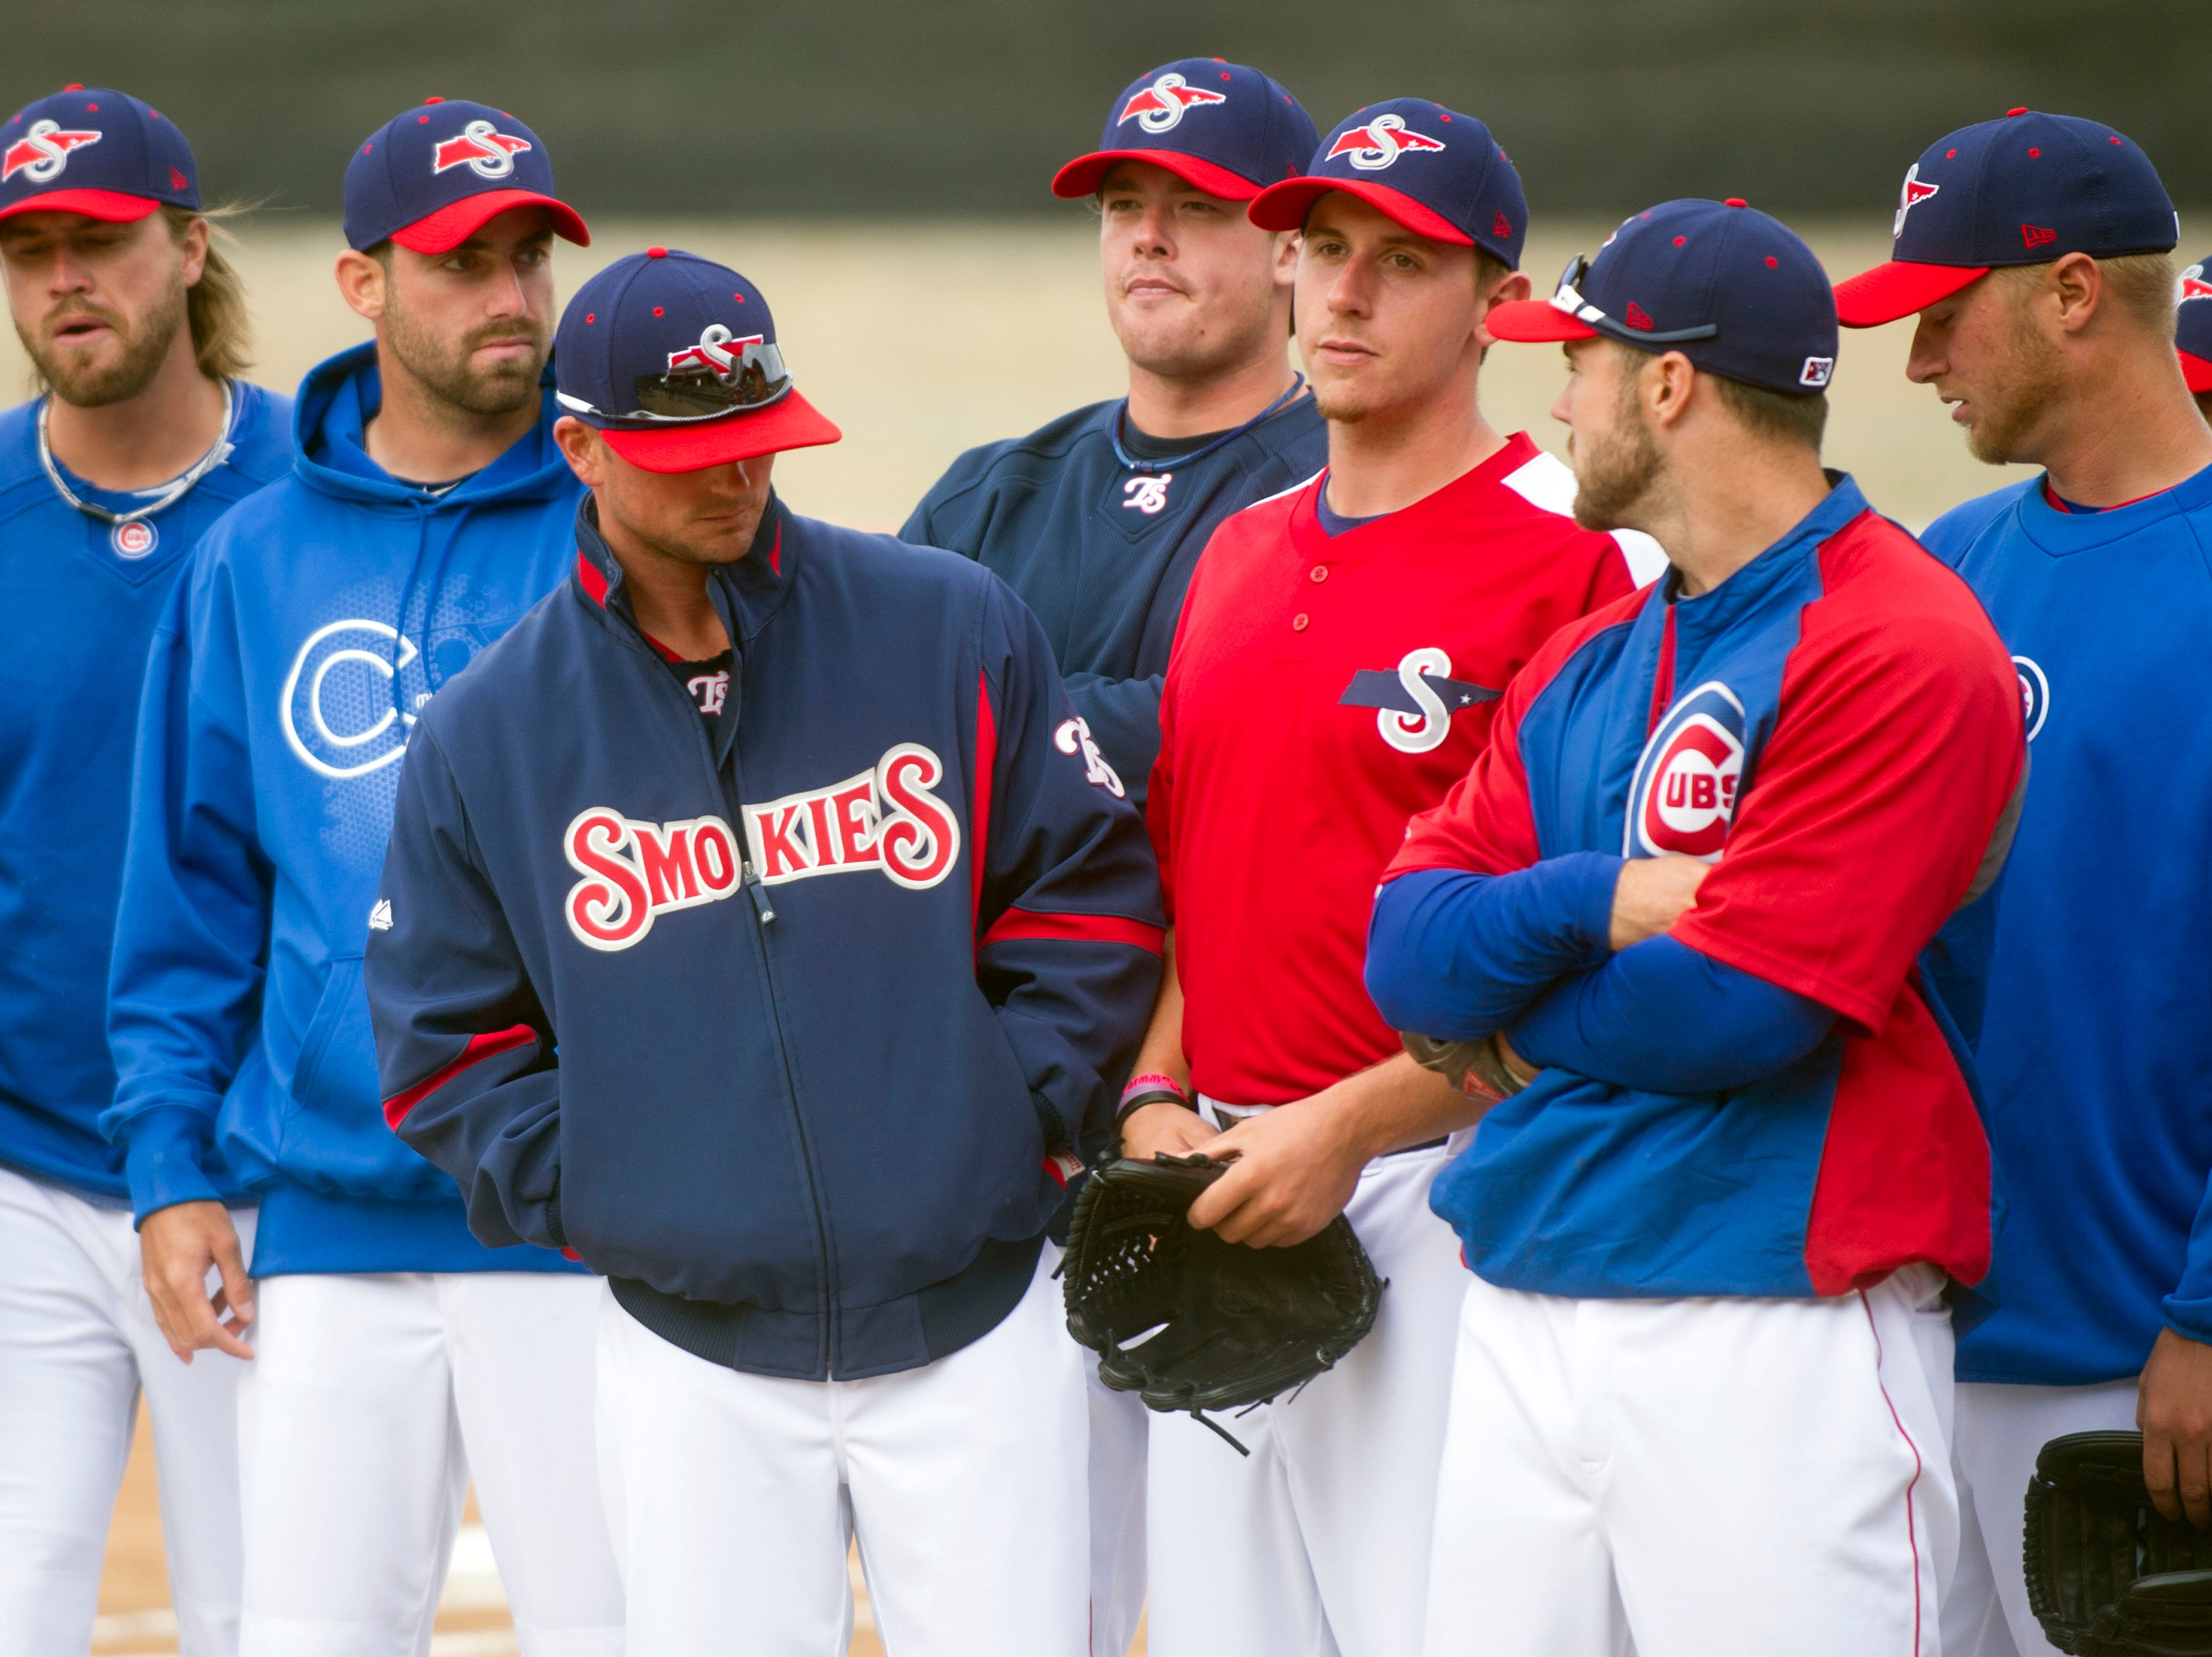 The Tennessee Smokies gather before the start of practice on  Tuesday, April 2, 2013.